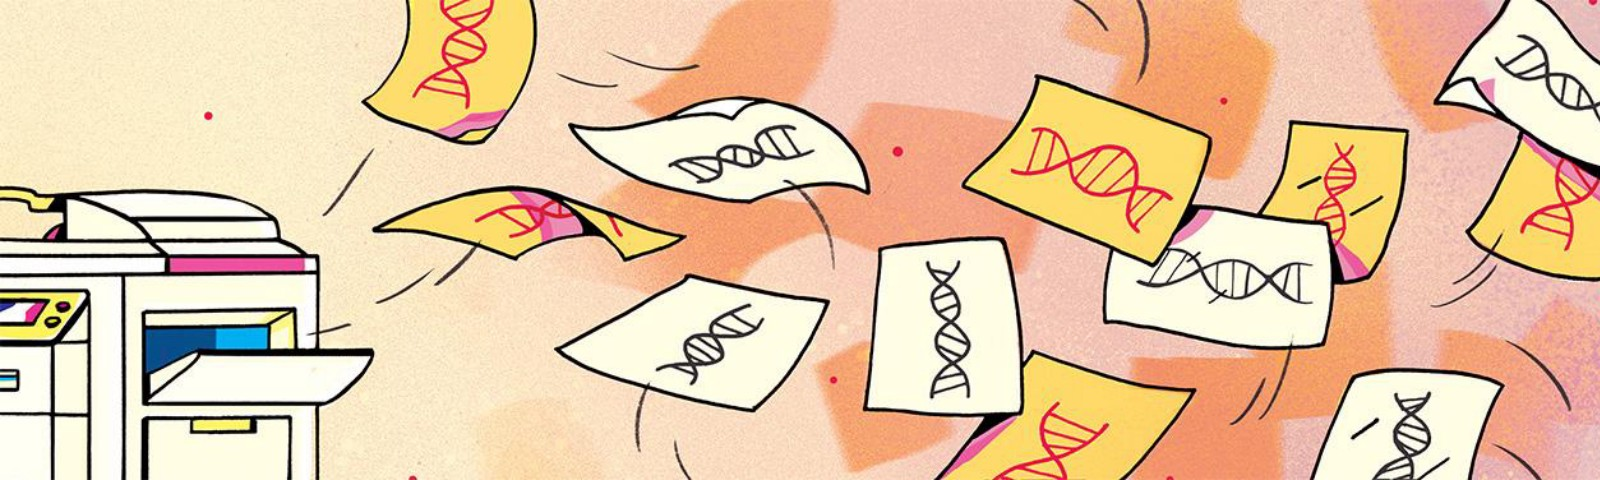 Illustration of a copy machine spitting out sheets of paper with DNA helices printed on them; two are yellow and pink.